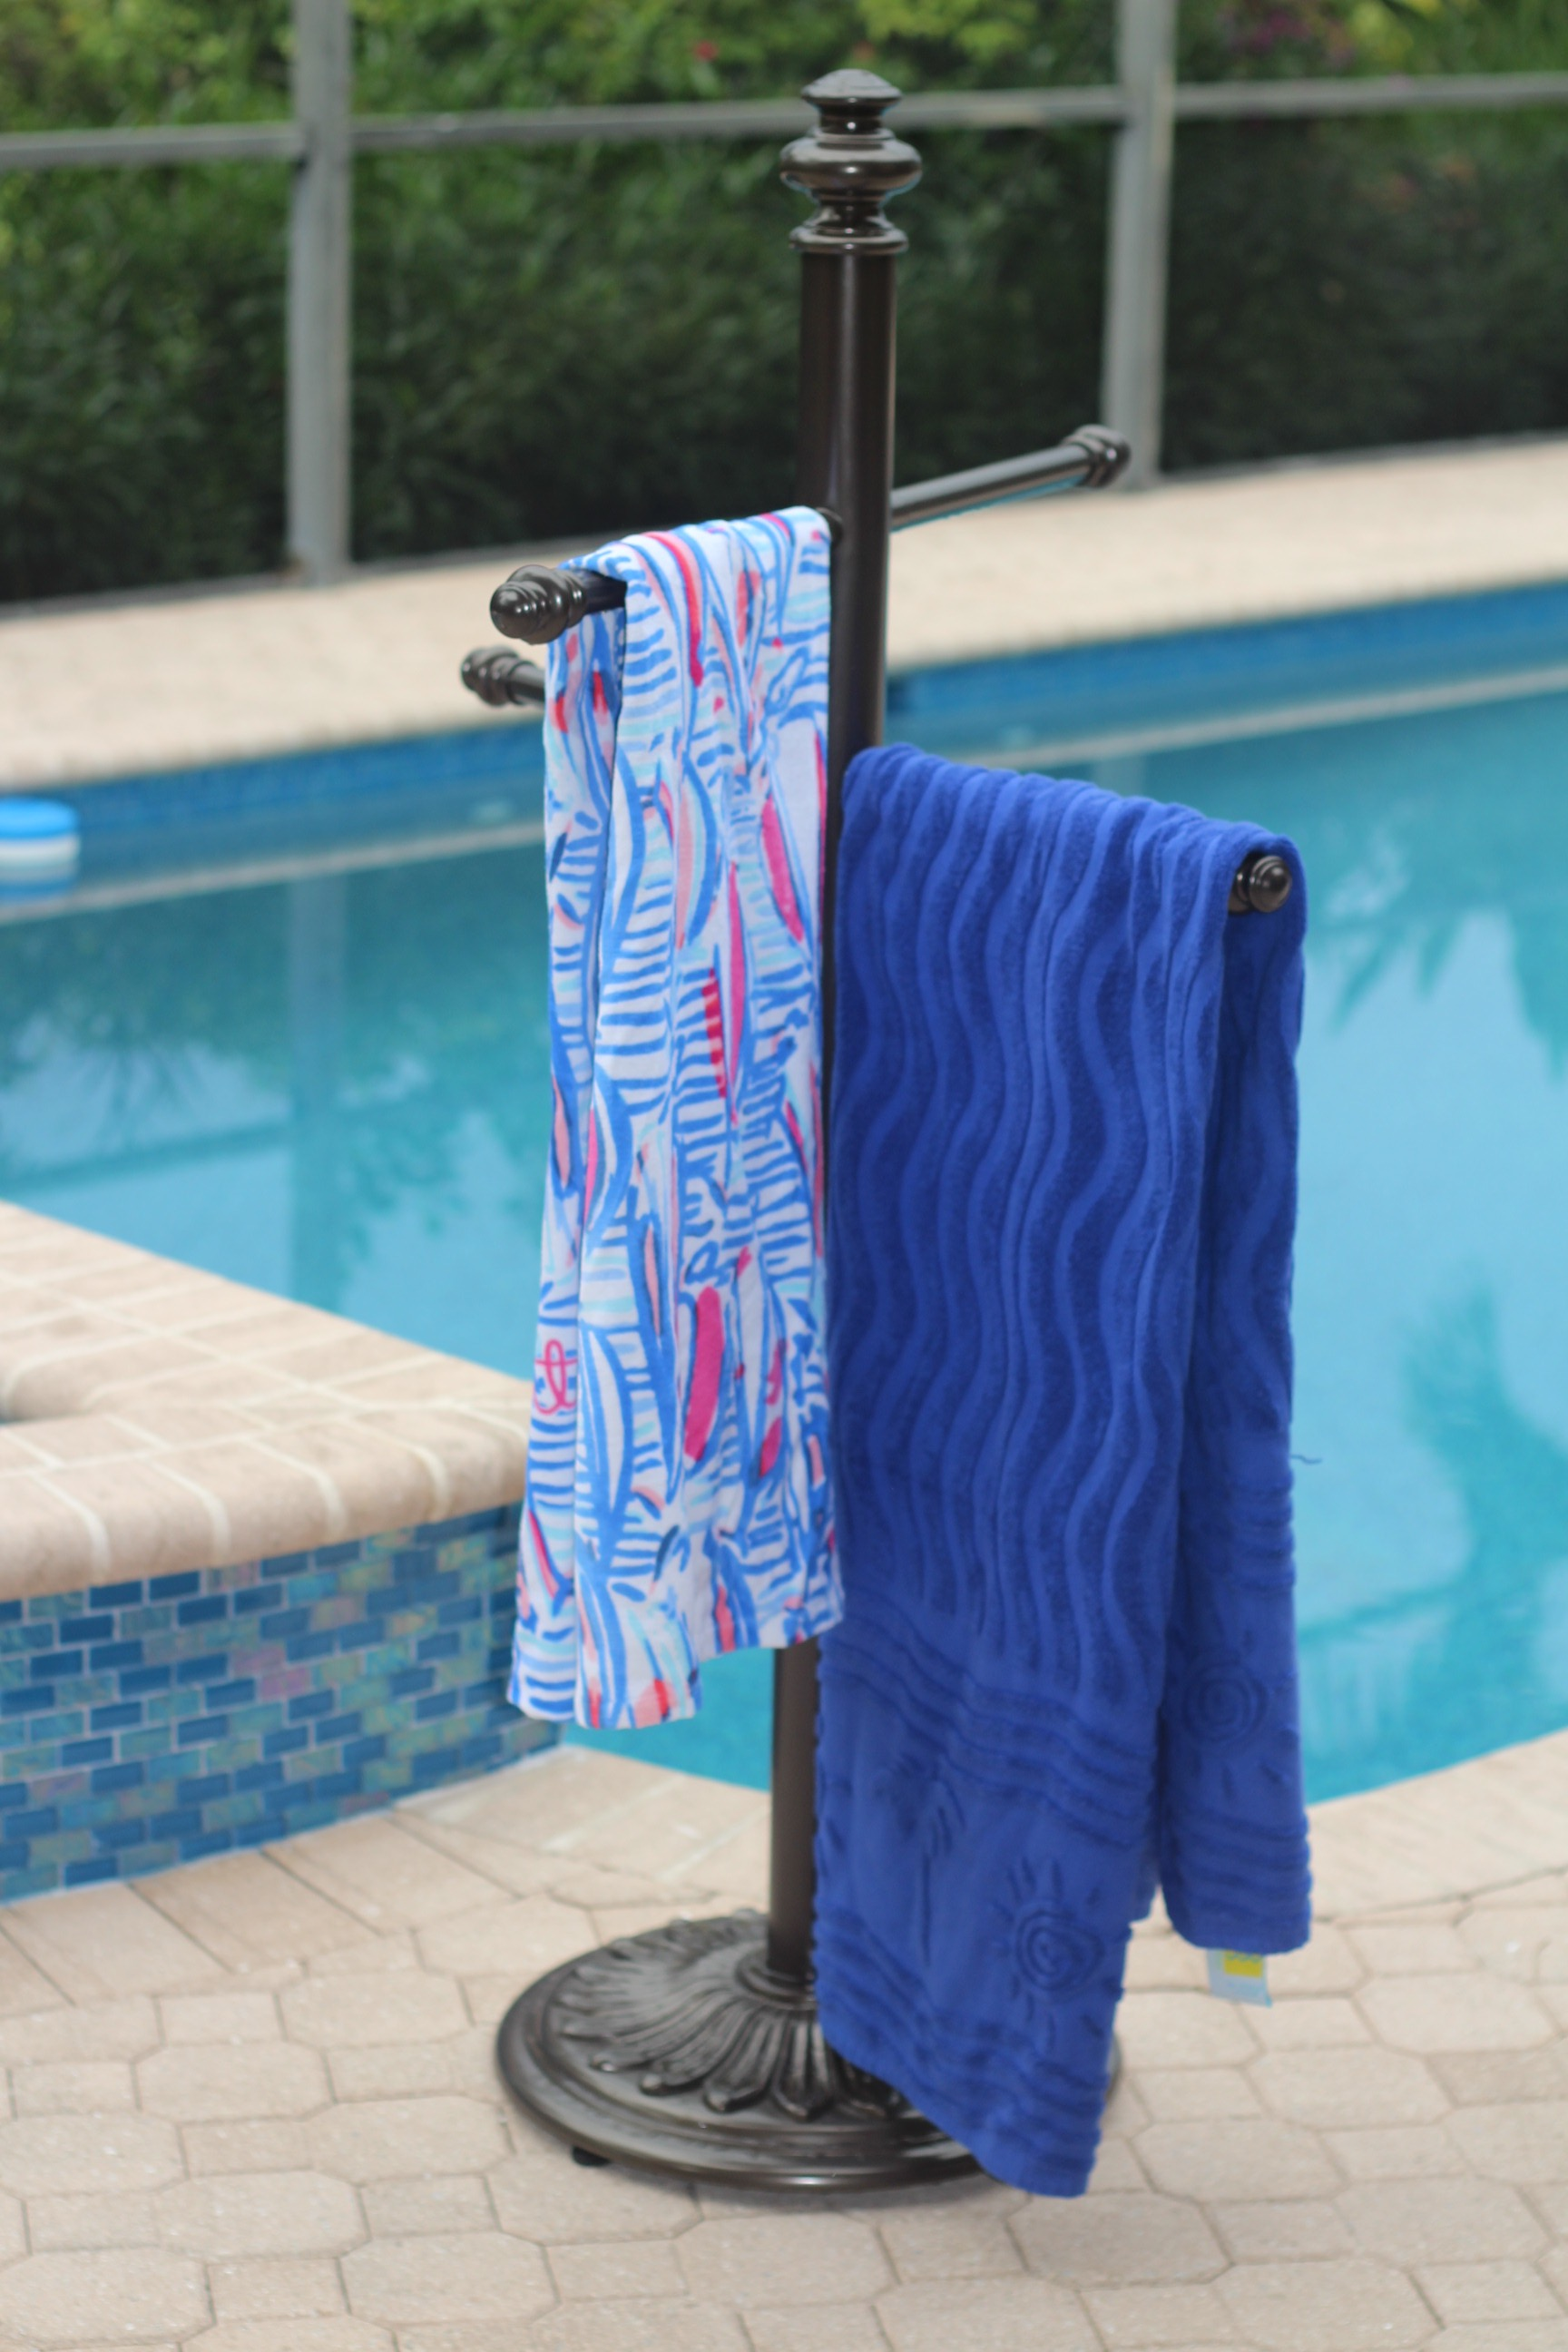 if you have a pool this is the product you are looking for no more wet towels scattered over the pool deck or draped on the backs of the outdoor furniture